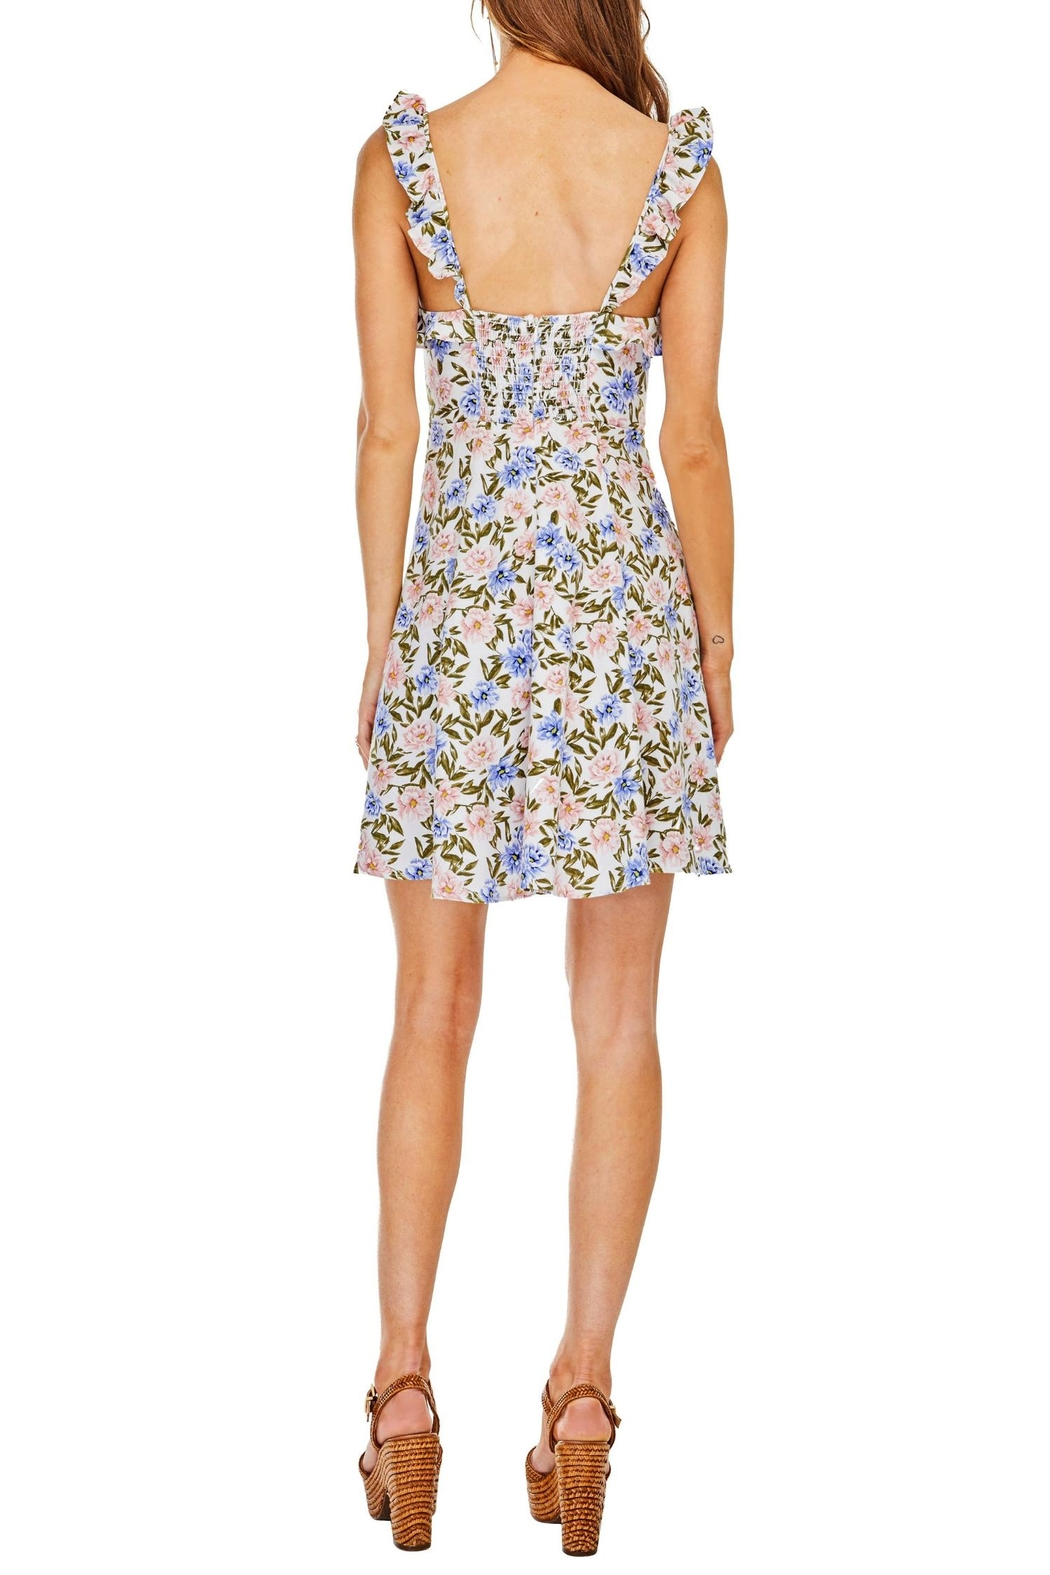 ASTR Floral Hannah Dress - Side Cropped Image